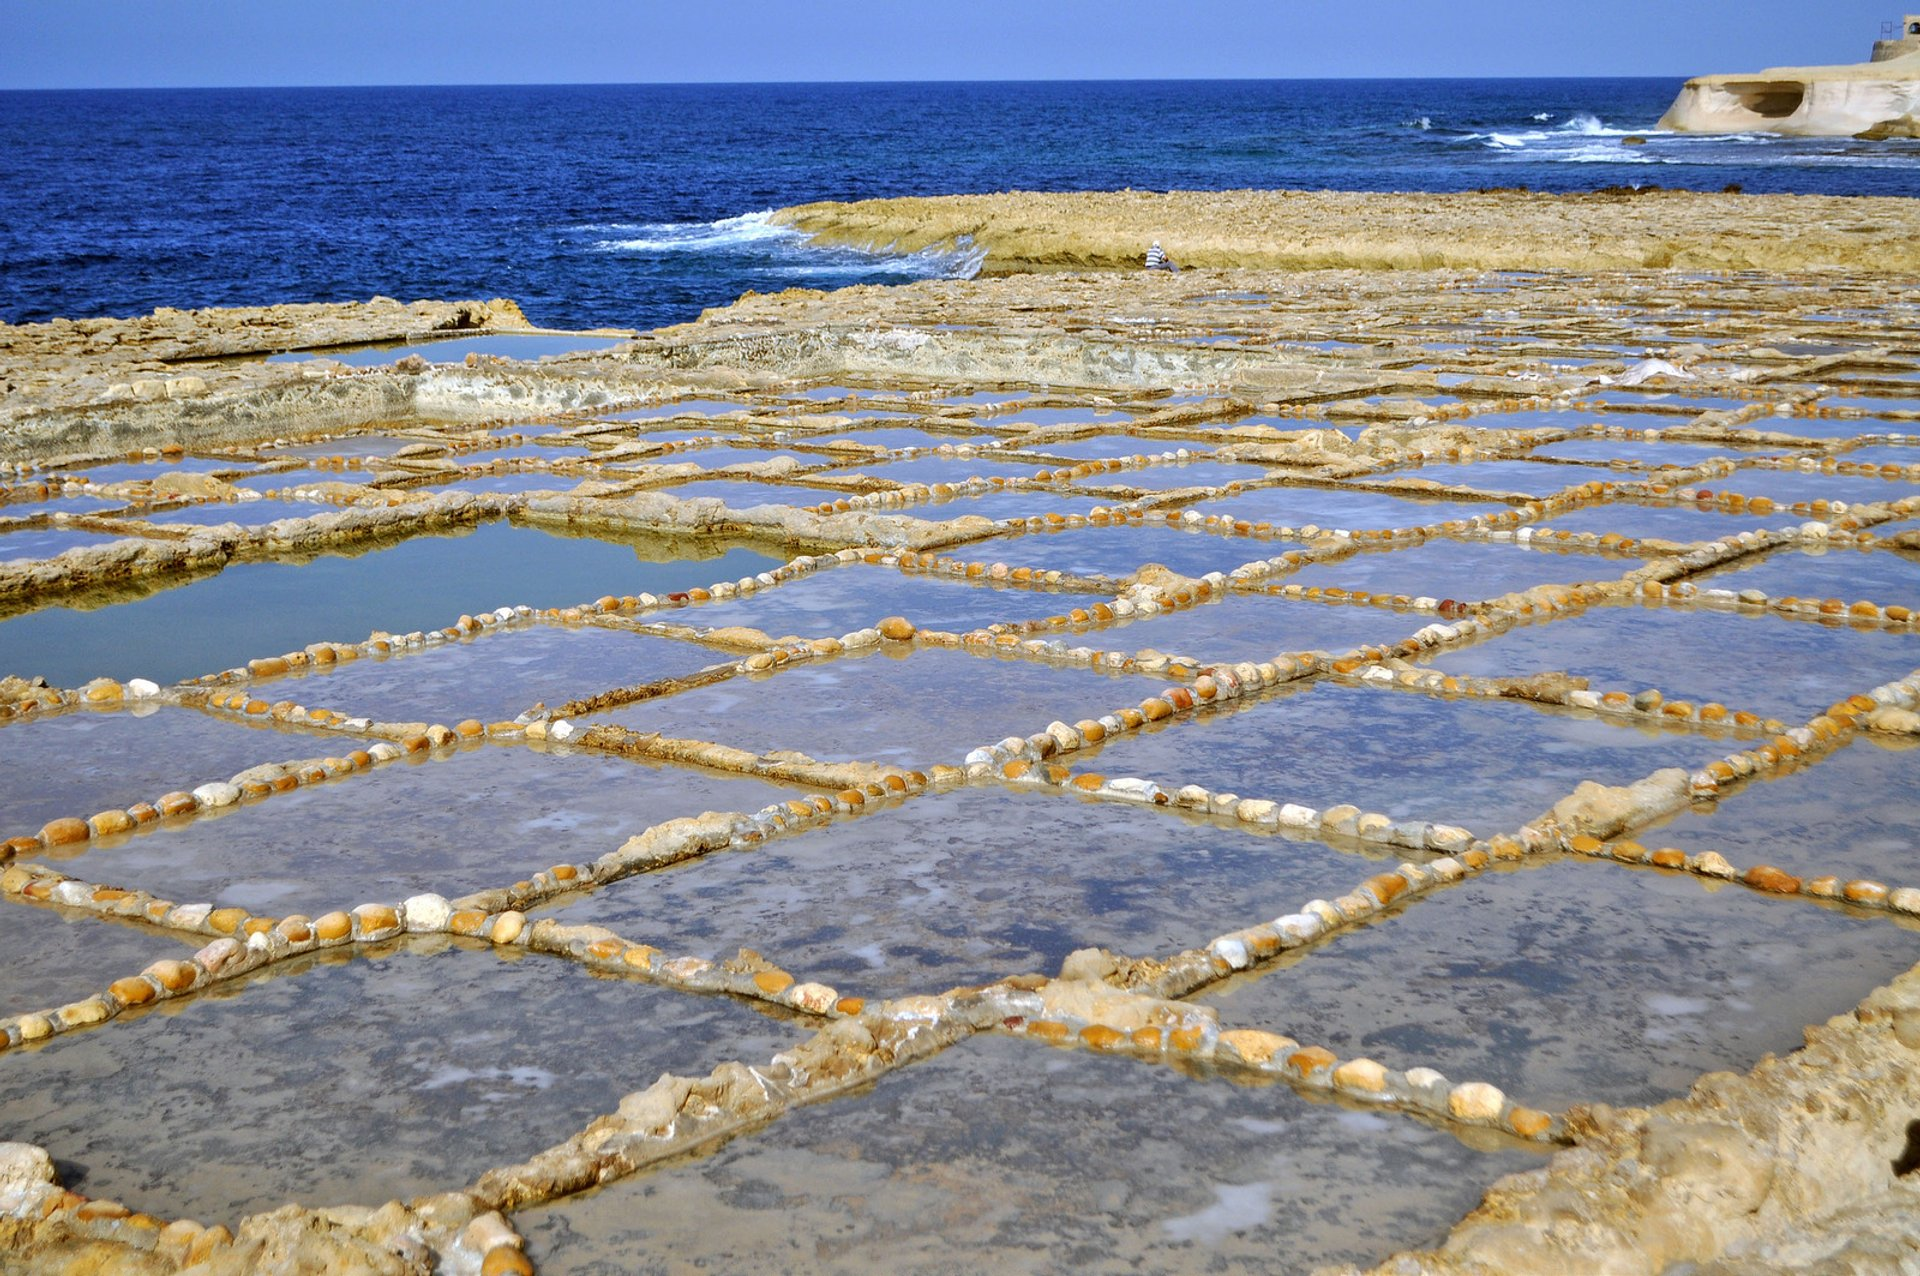 Sea Salt Harvesting in Malta 2020 - Best Time